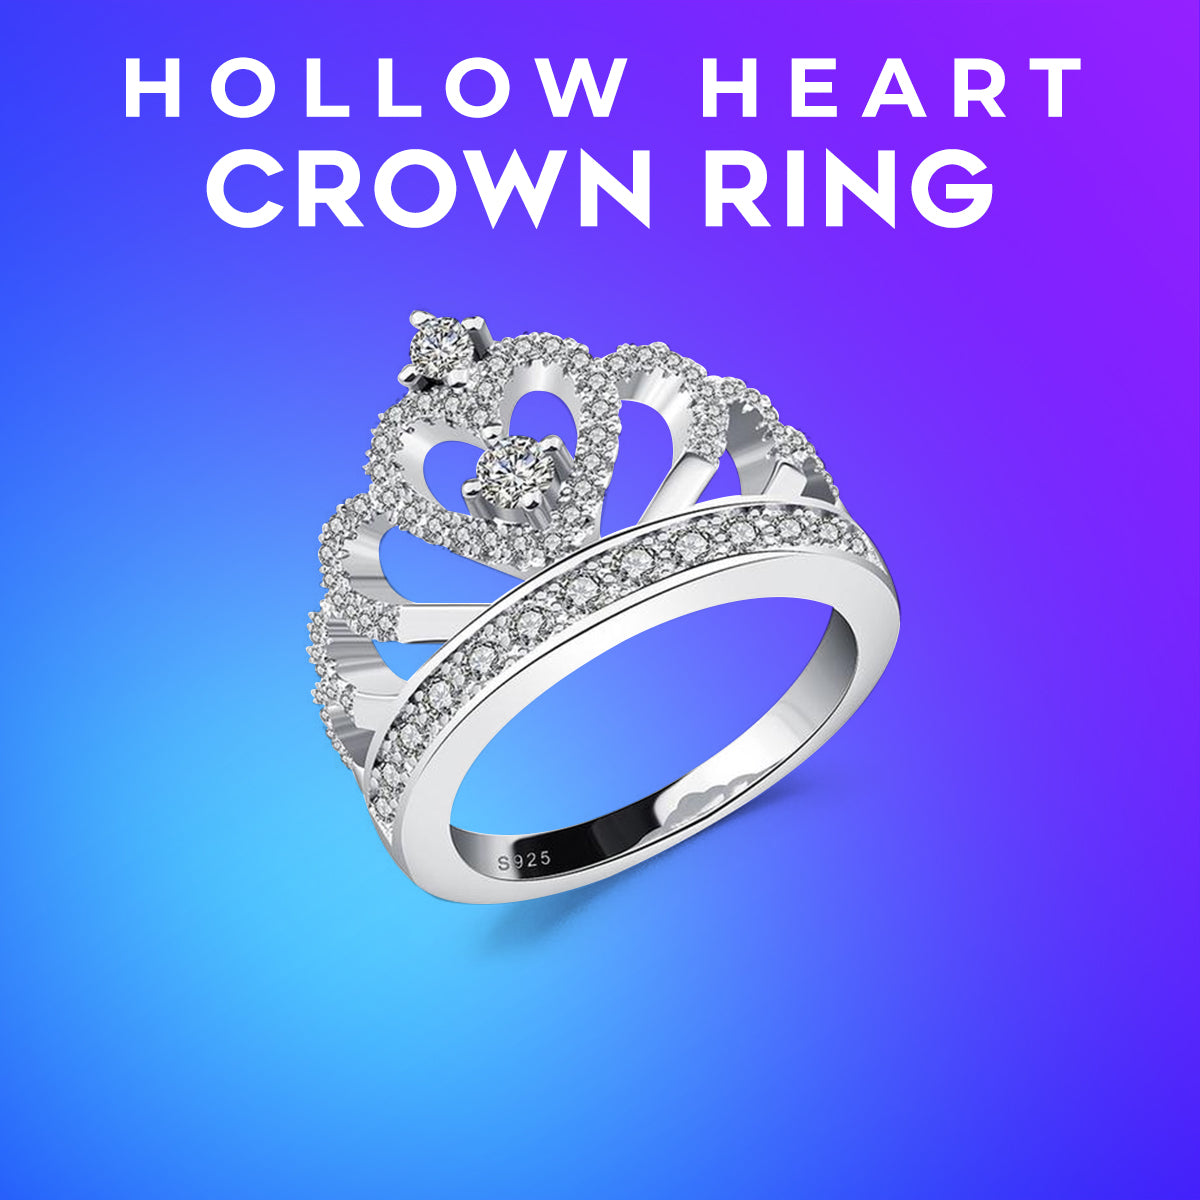 Hollow Heart Crown Ring